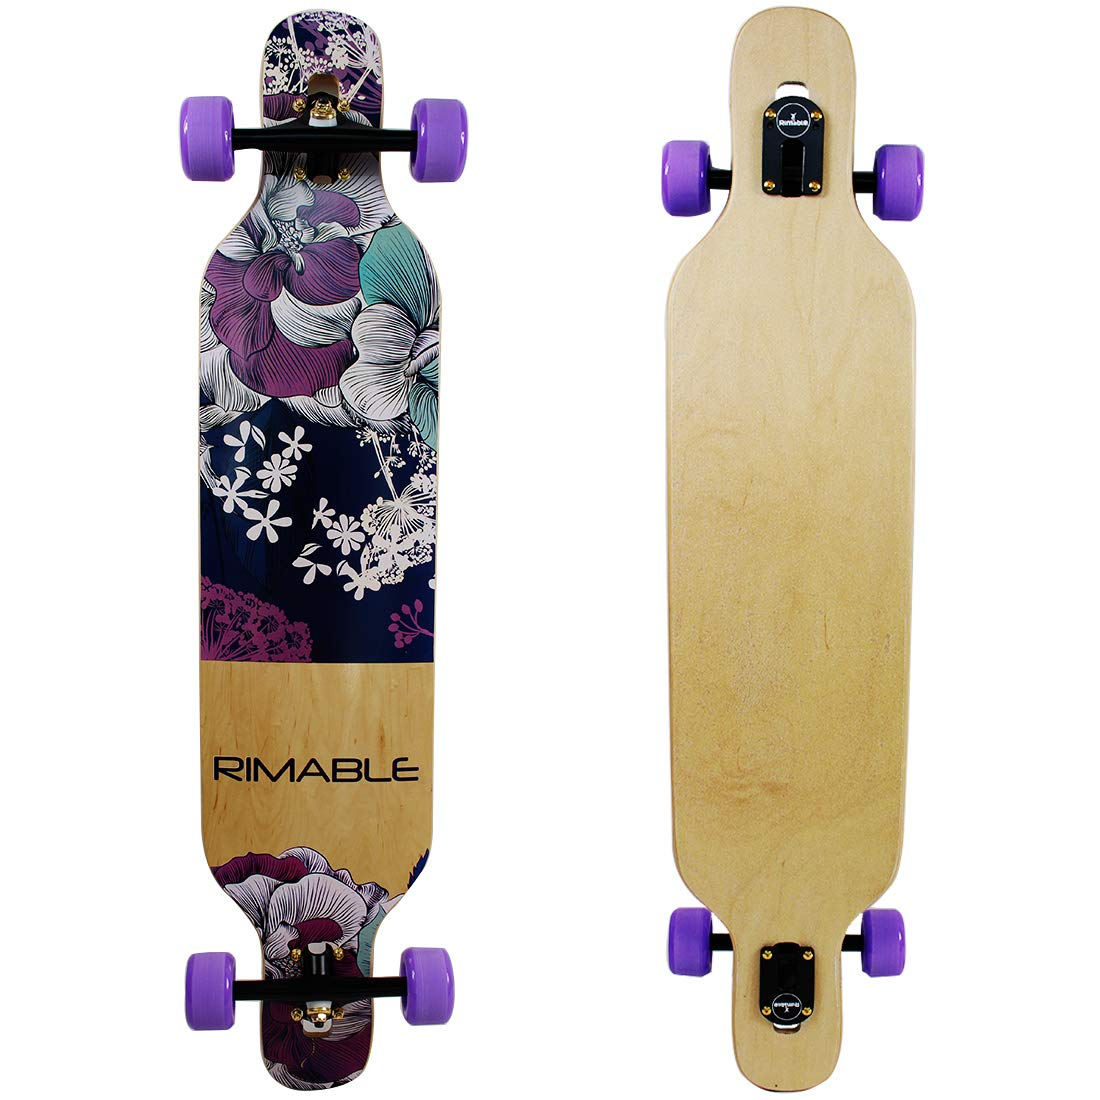 RIMABLE Freeride Concave Deck Longboard Blue by RIMABLE